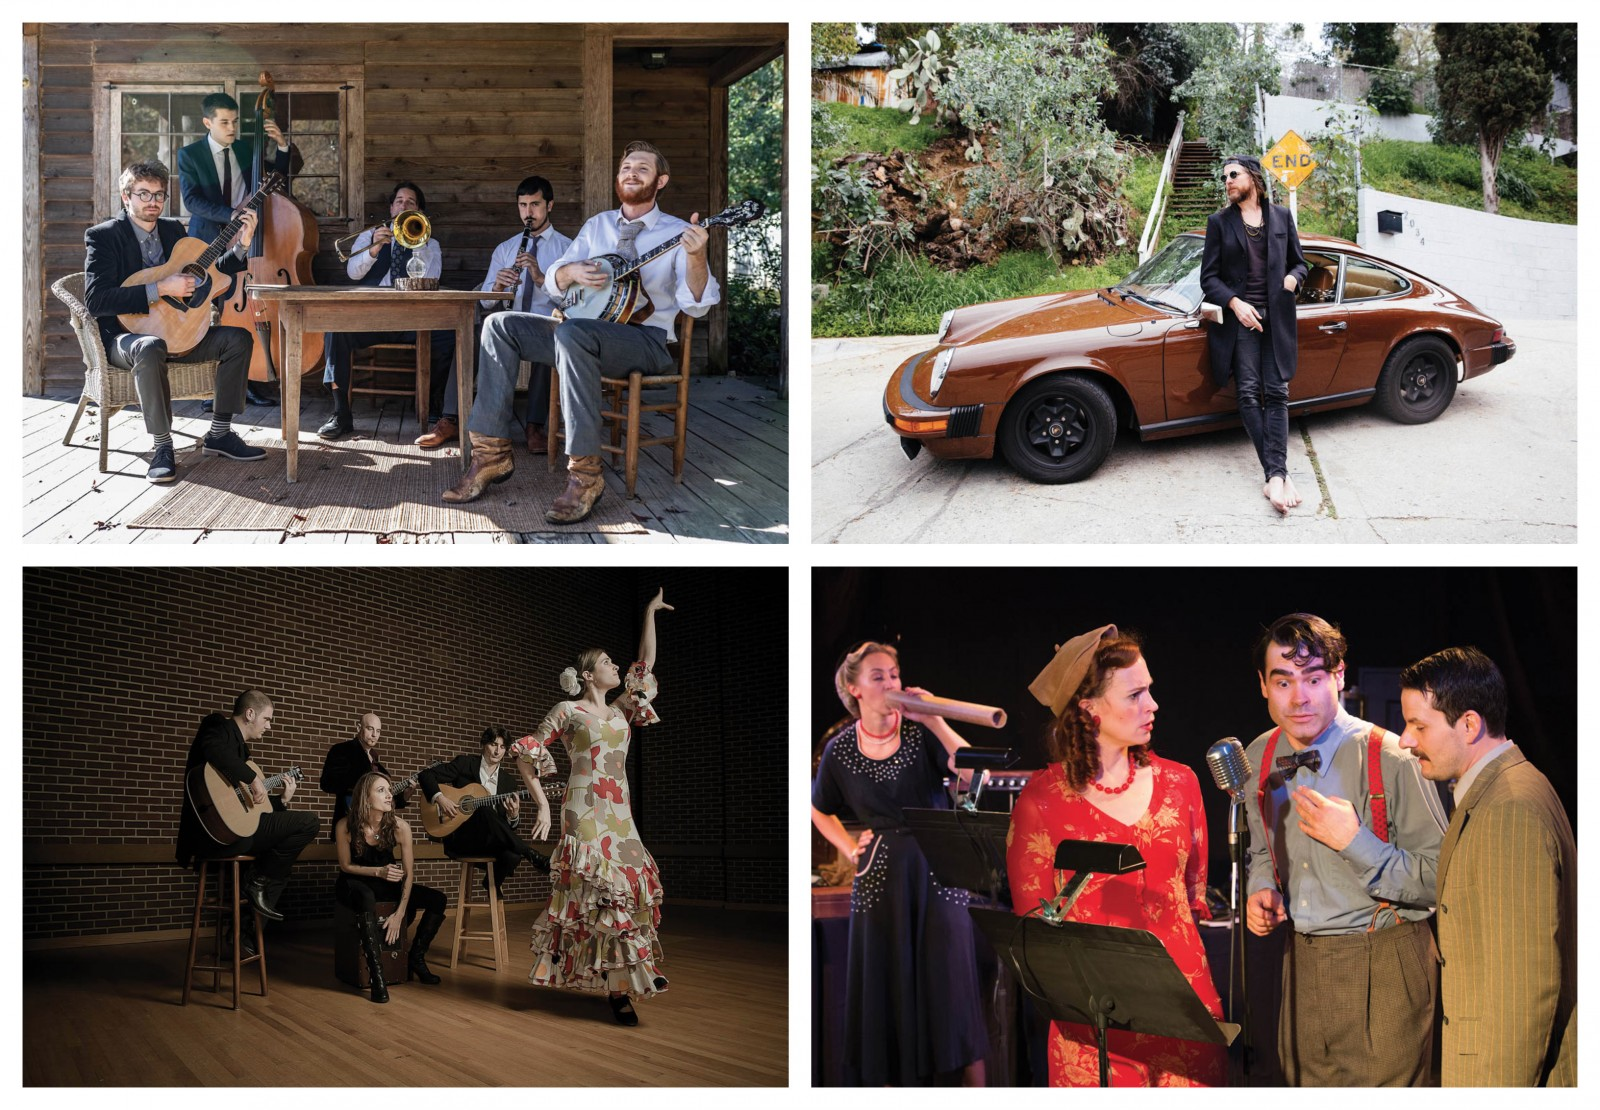 (Clockwise from top left) Ellis Dyson & The Shambles; Jonathan Wilson. Photo by Shelby Duncan; Van Tassel Party. The Headless Hessian of Sleepy Hollow. Immediate Theatre Project; Flamenco Night. The Paco Band.